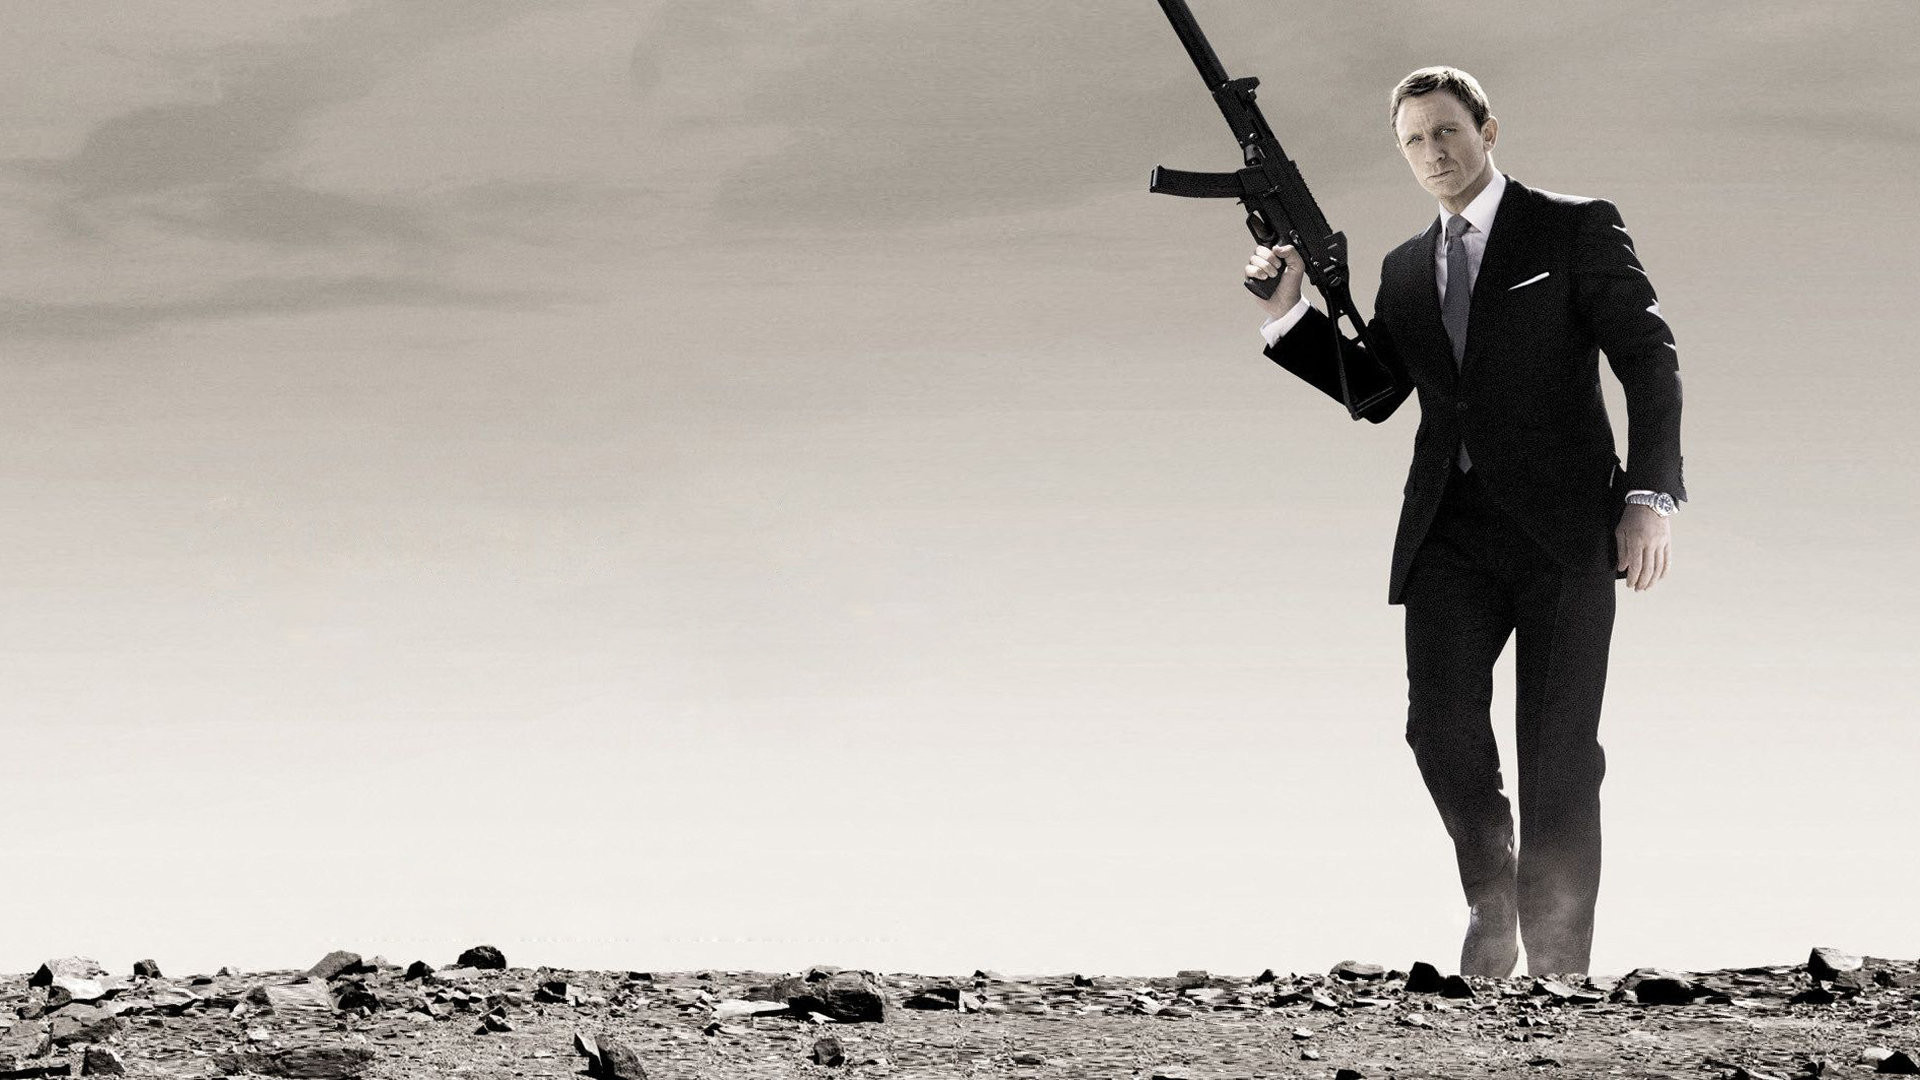 James bond wallpaper hd - James bond images hd ...